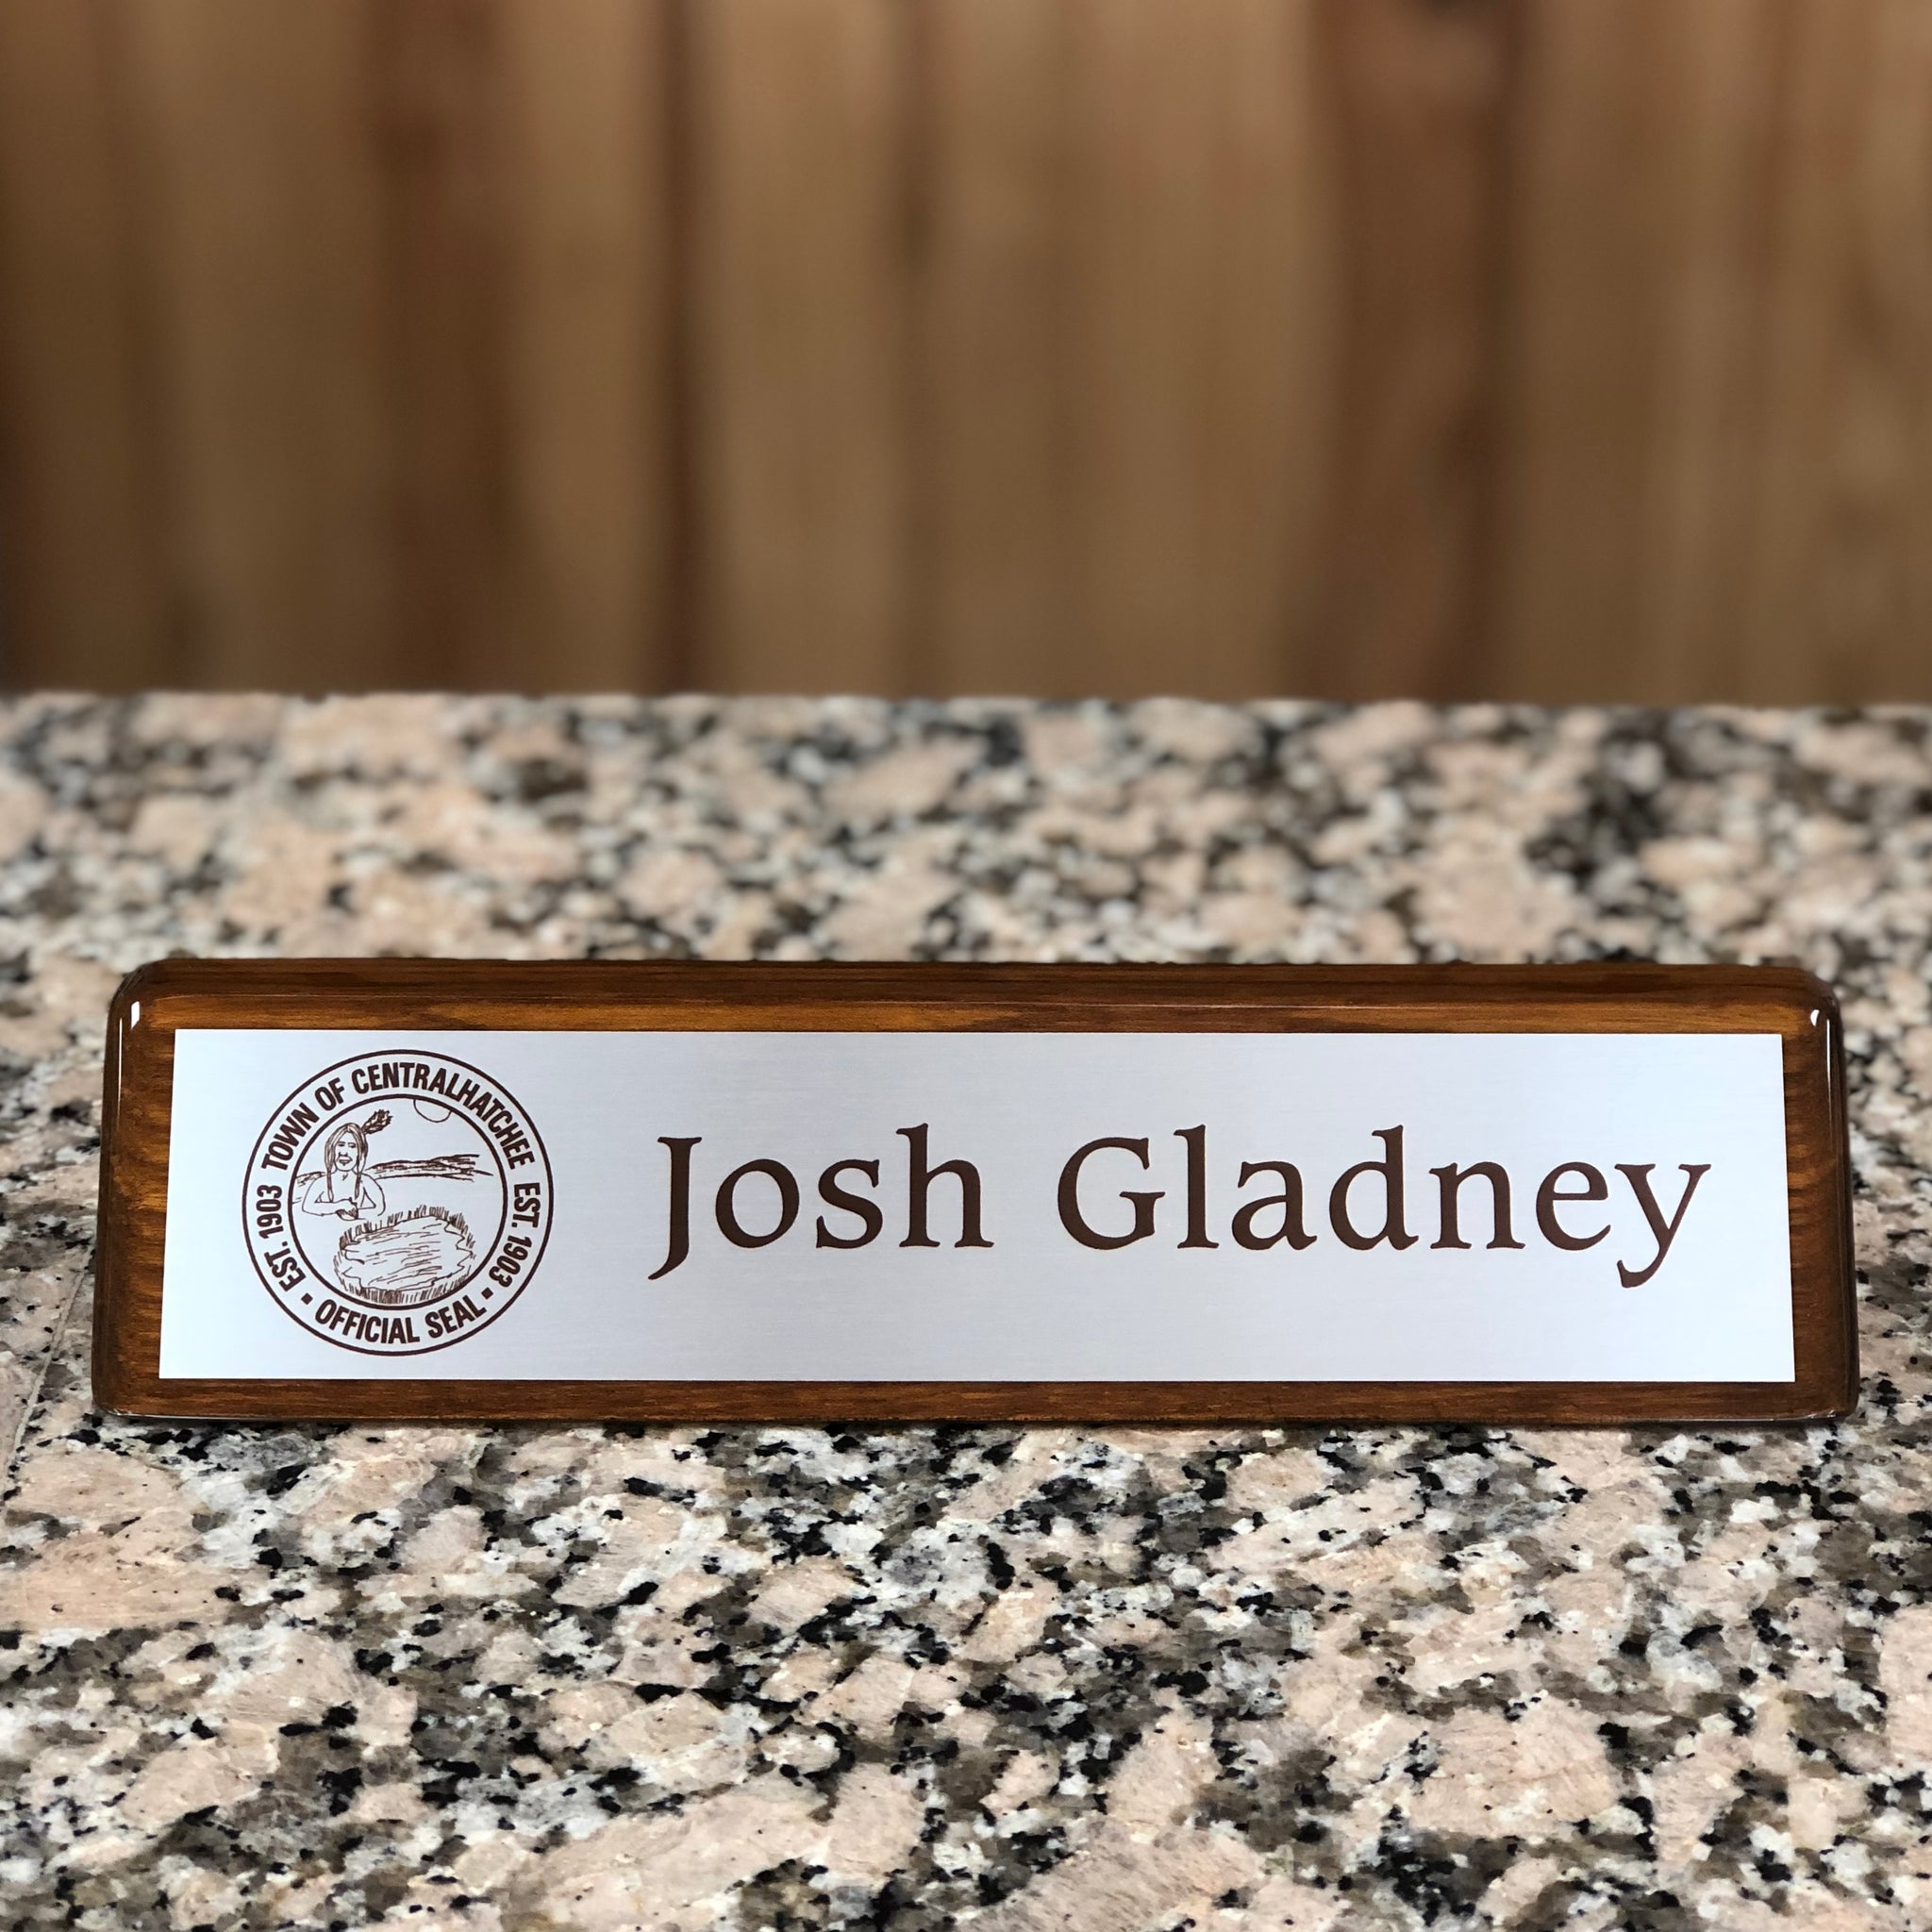 Walnut finish glossy desk bar with a satin silver plate engraved with a logo to the left followed by a name in brown font to match the wood finish.